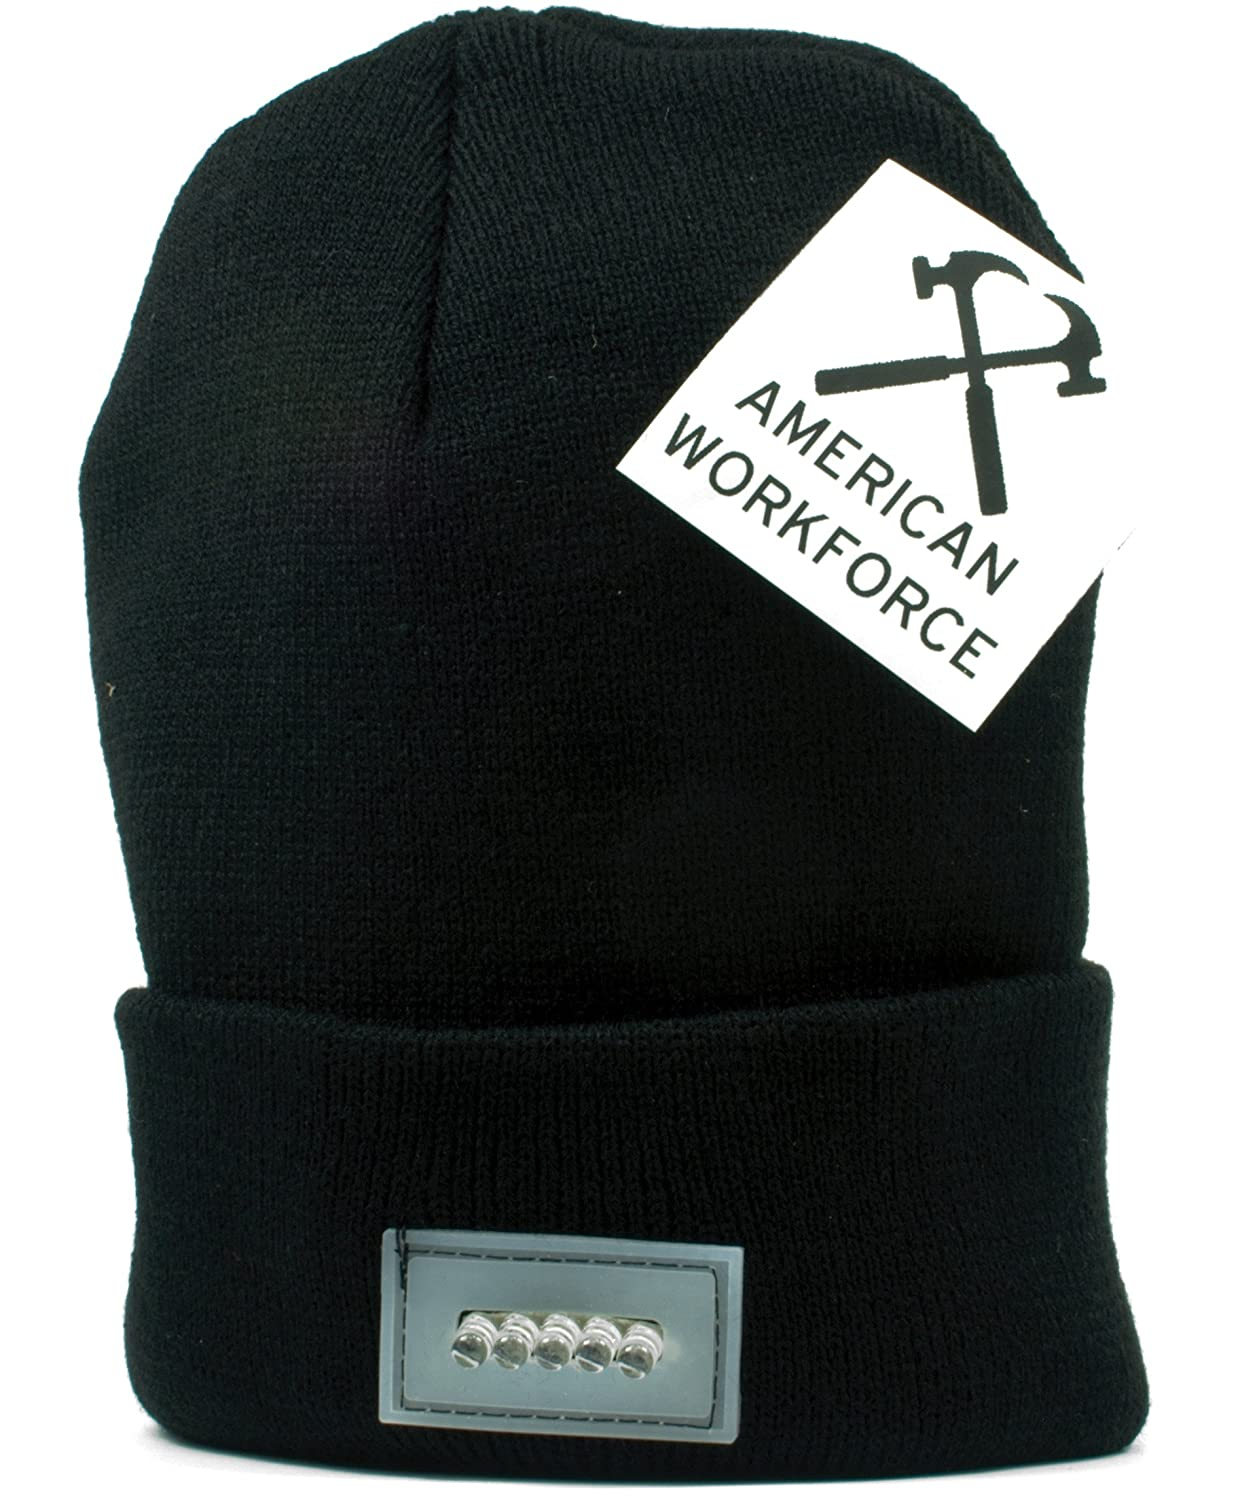 Ultra Bright 5 LED Beanie Hat / Cap by American Workforce - Unisex ...